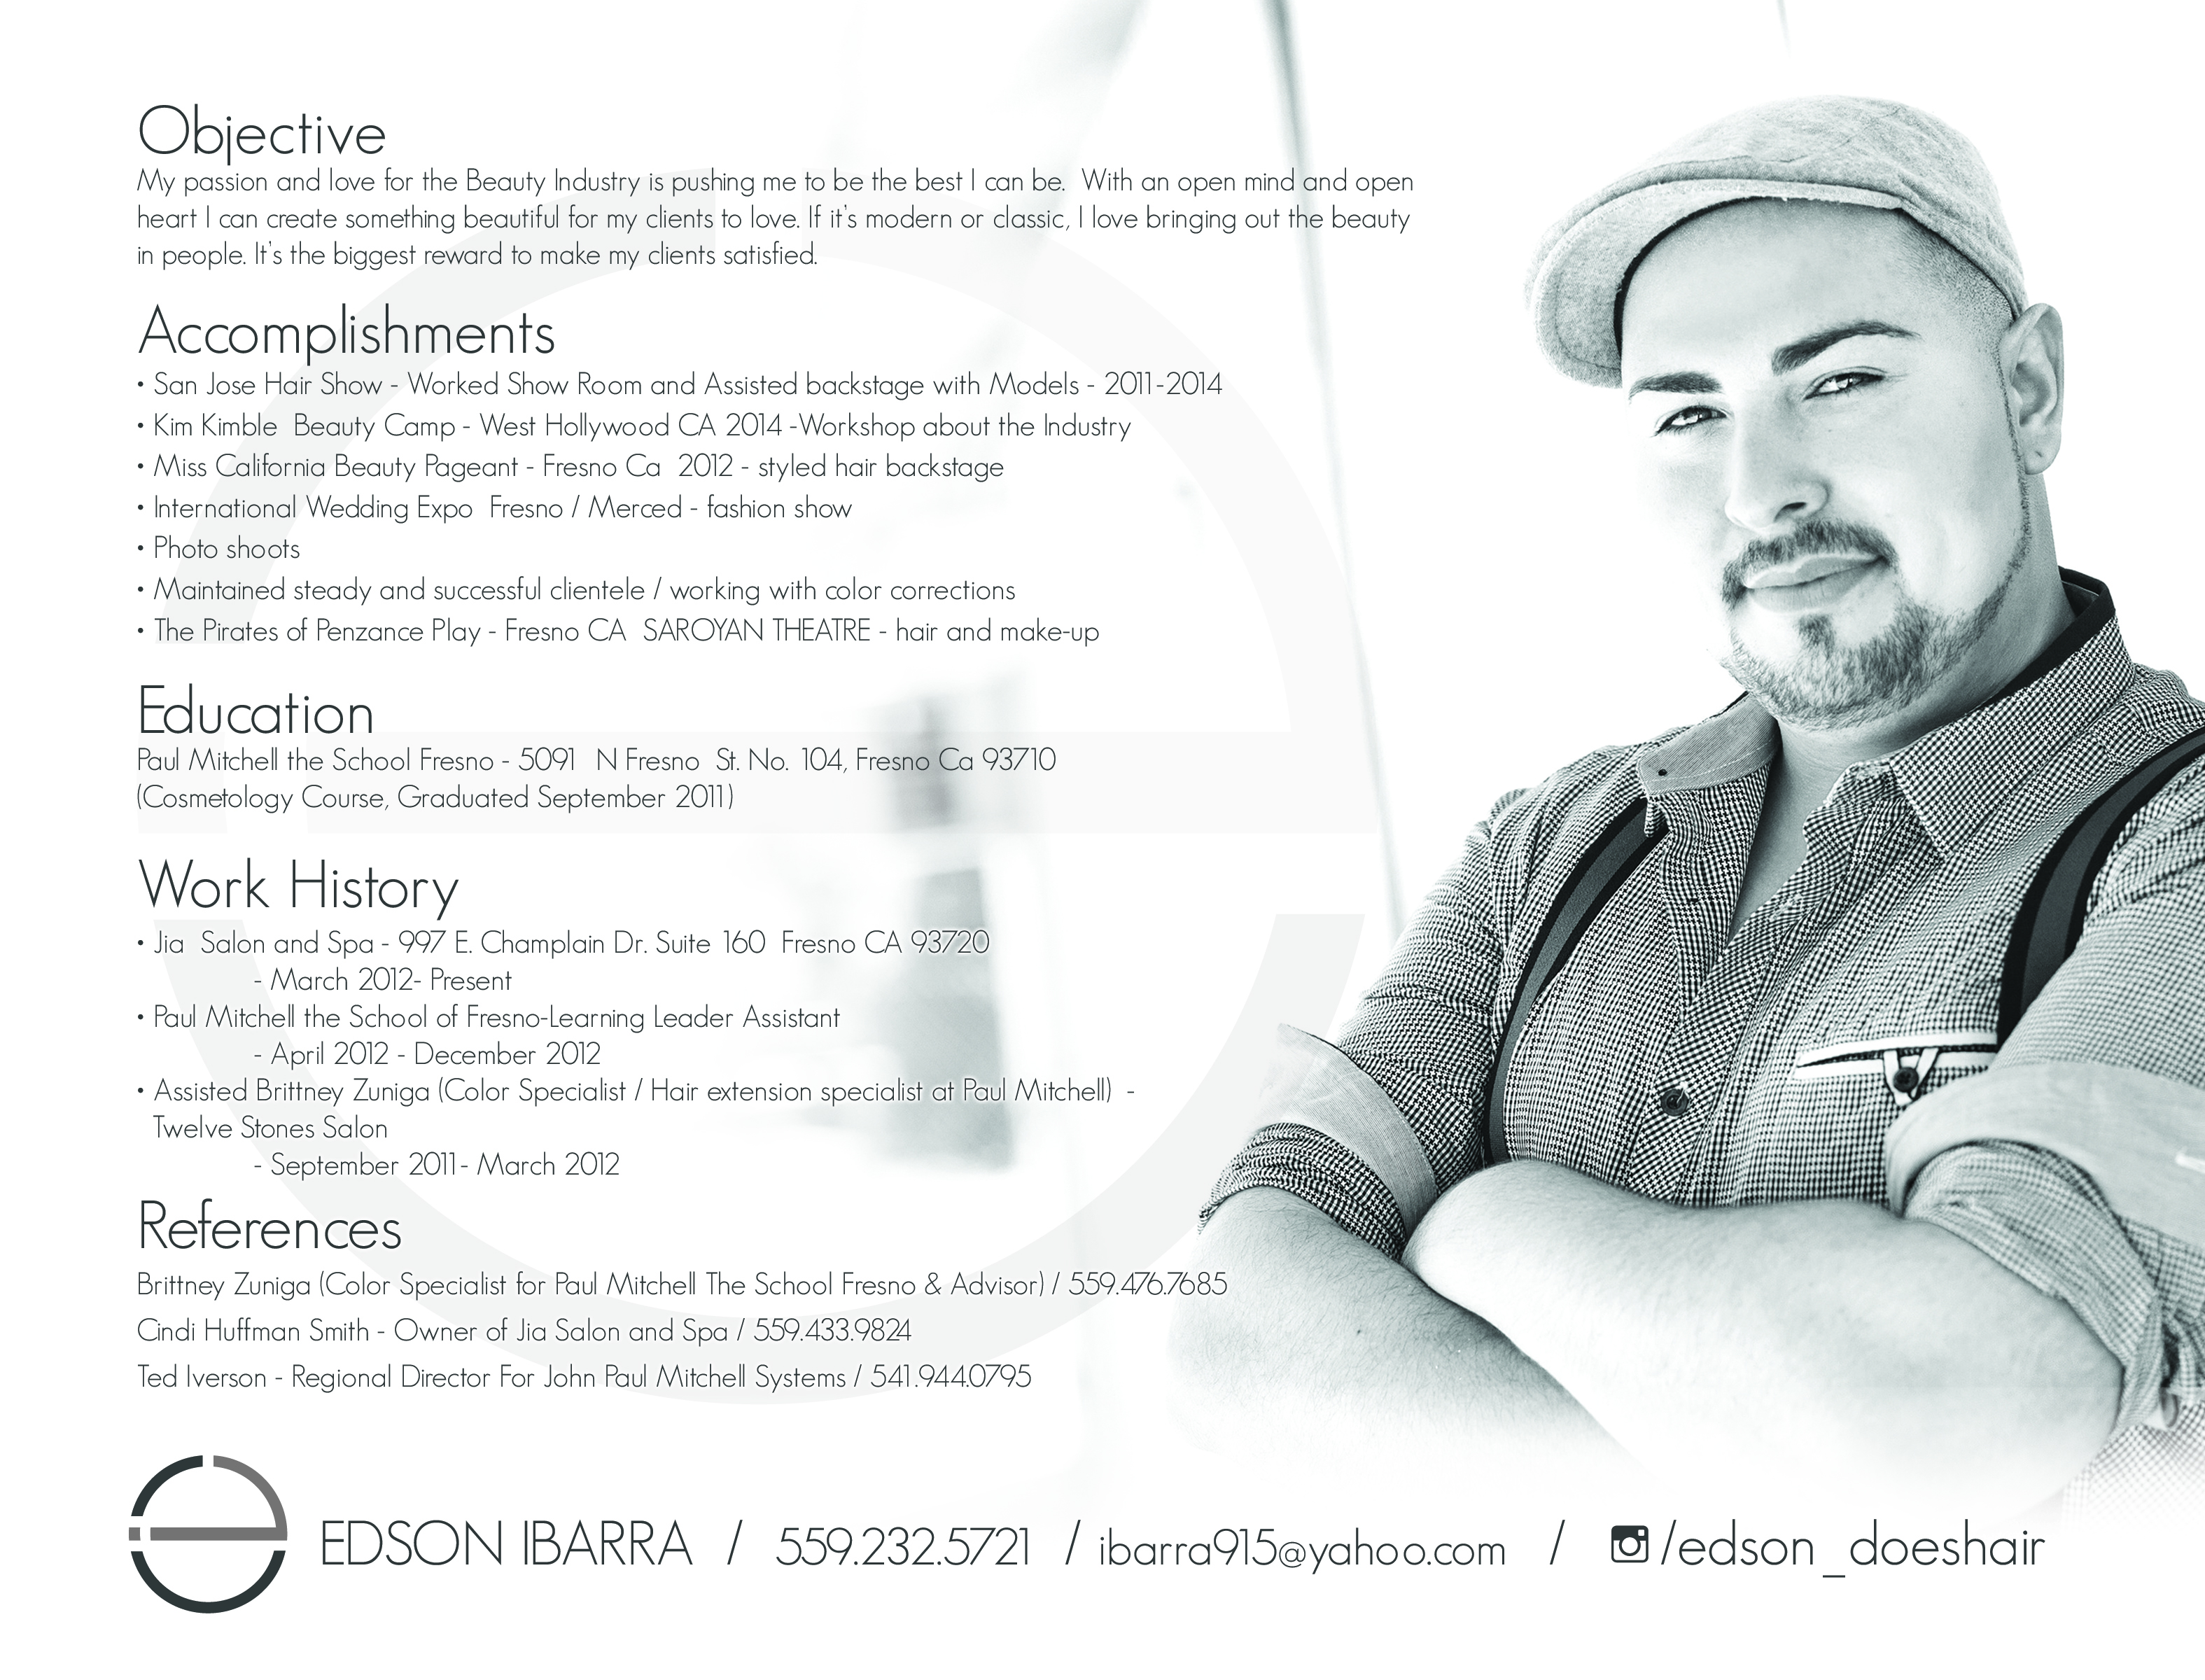 EdsonIbarra_Resume_FRONT-1.jpg